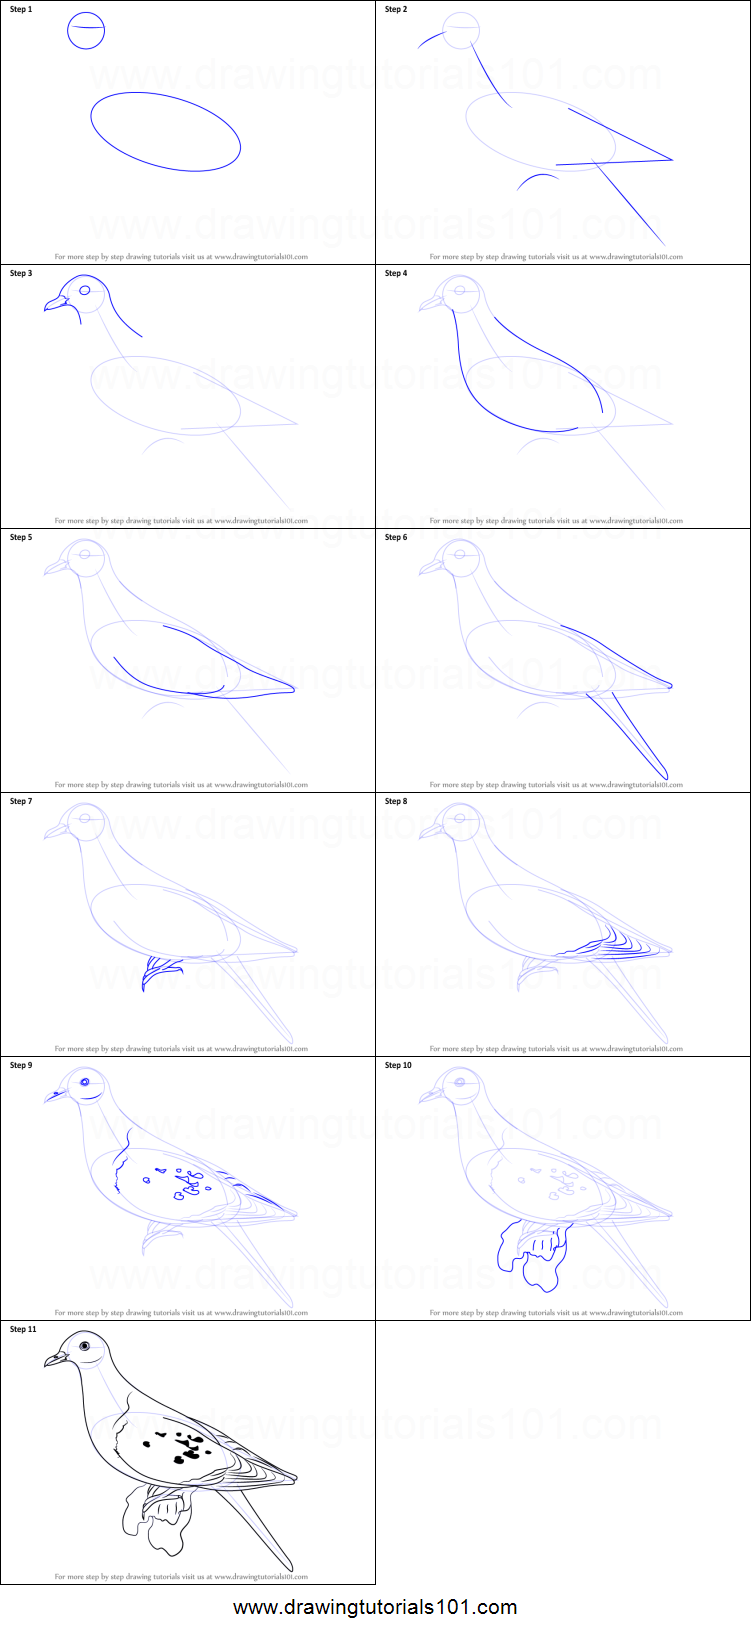 How to Draw a Passenger Pigeon printable step by step drawing